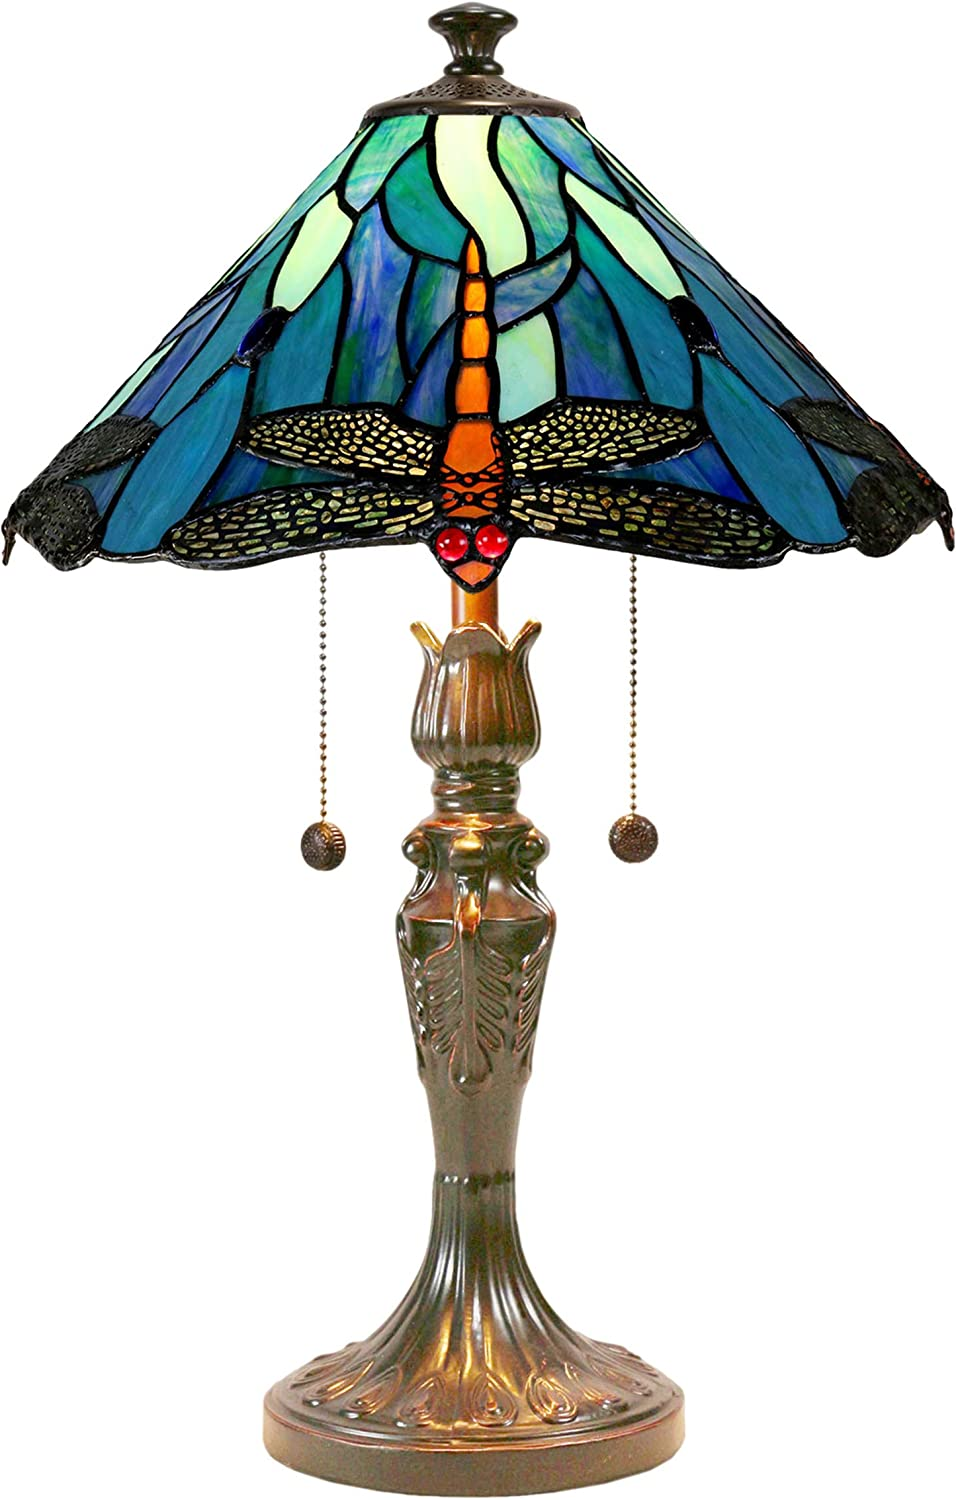 2021new shipping free shipping Dale OFFicial shop Tiffany Lamps TT19215 Table Lamp Dragonfly Huxley